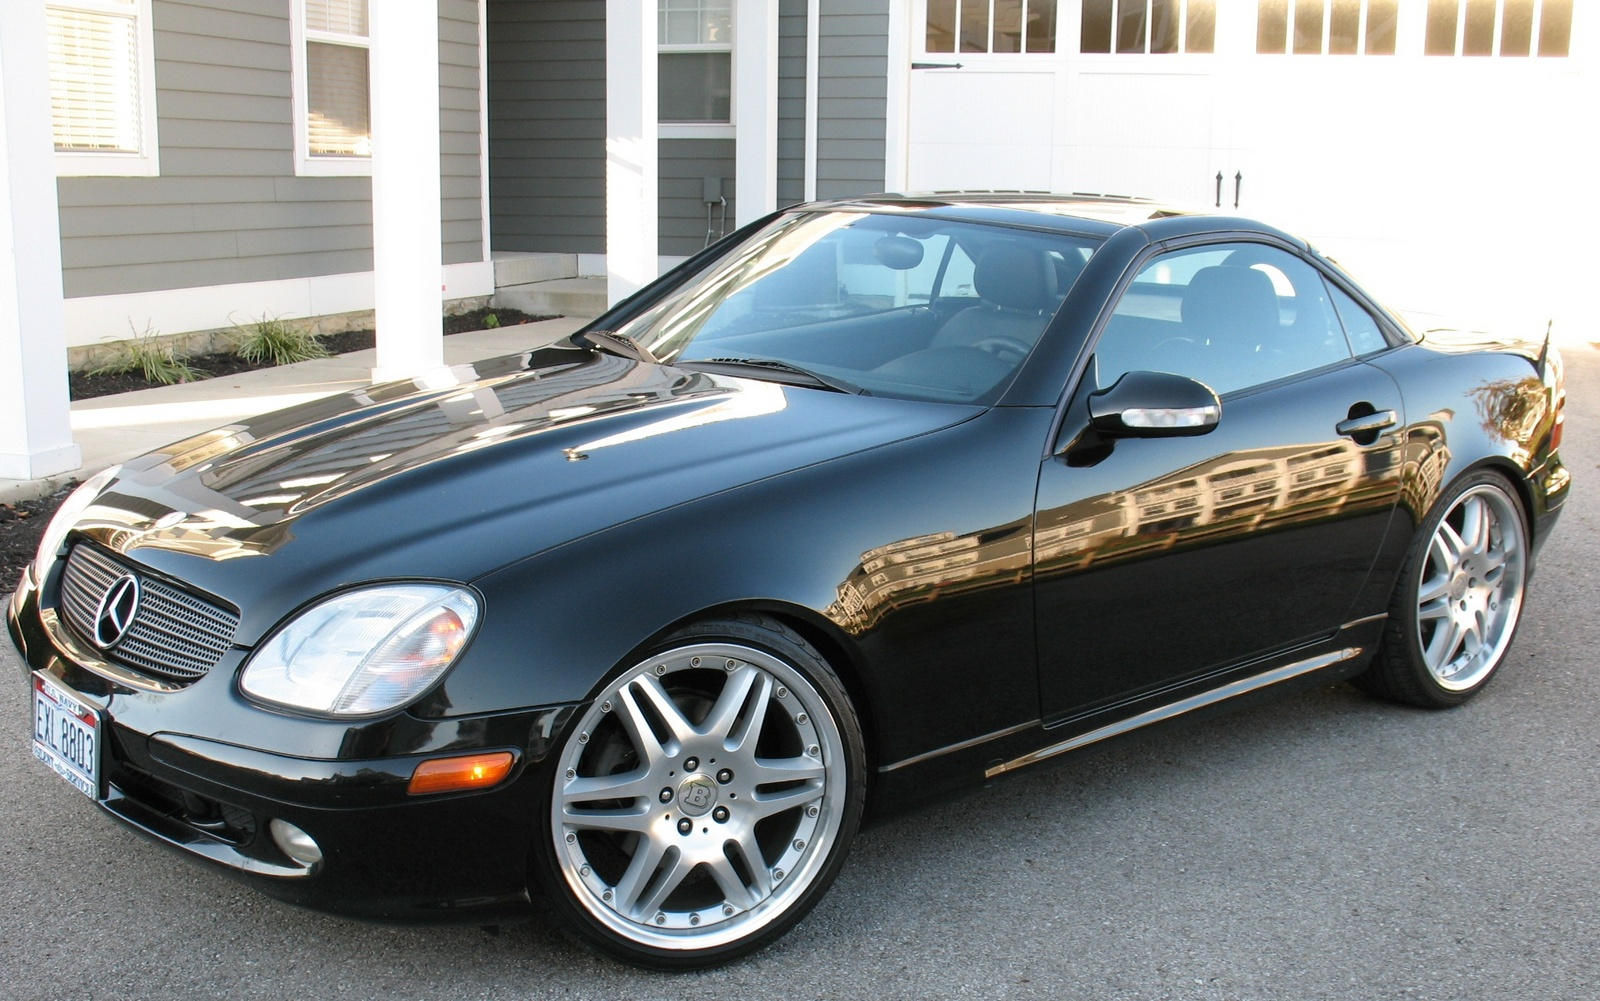 2001 mercedes benz slk 320 specs. Black Bedroom Furniture Sets. Home Design Ideas